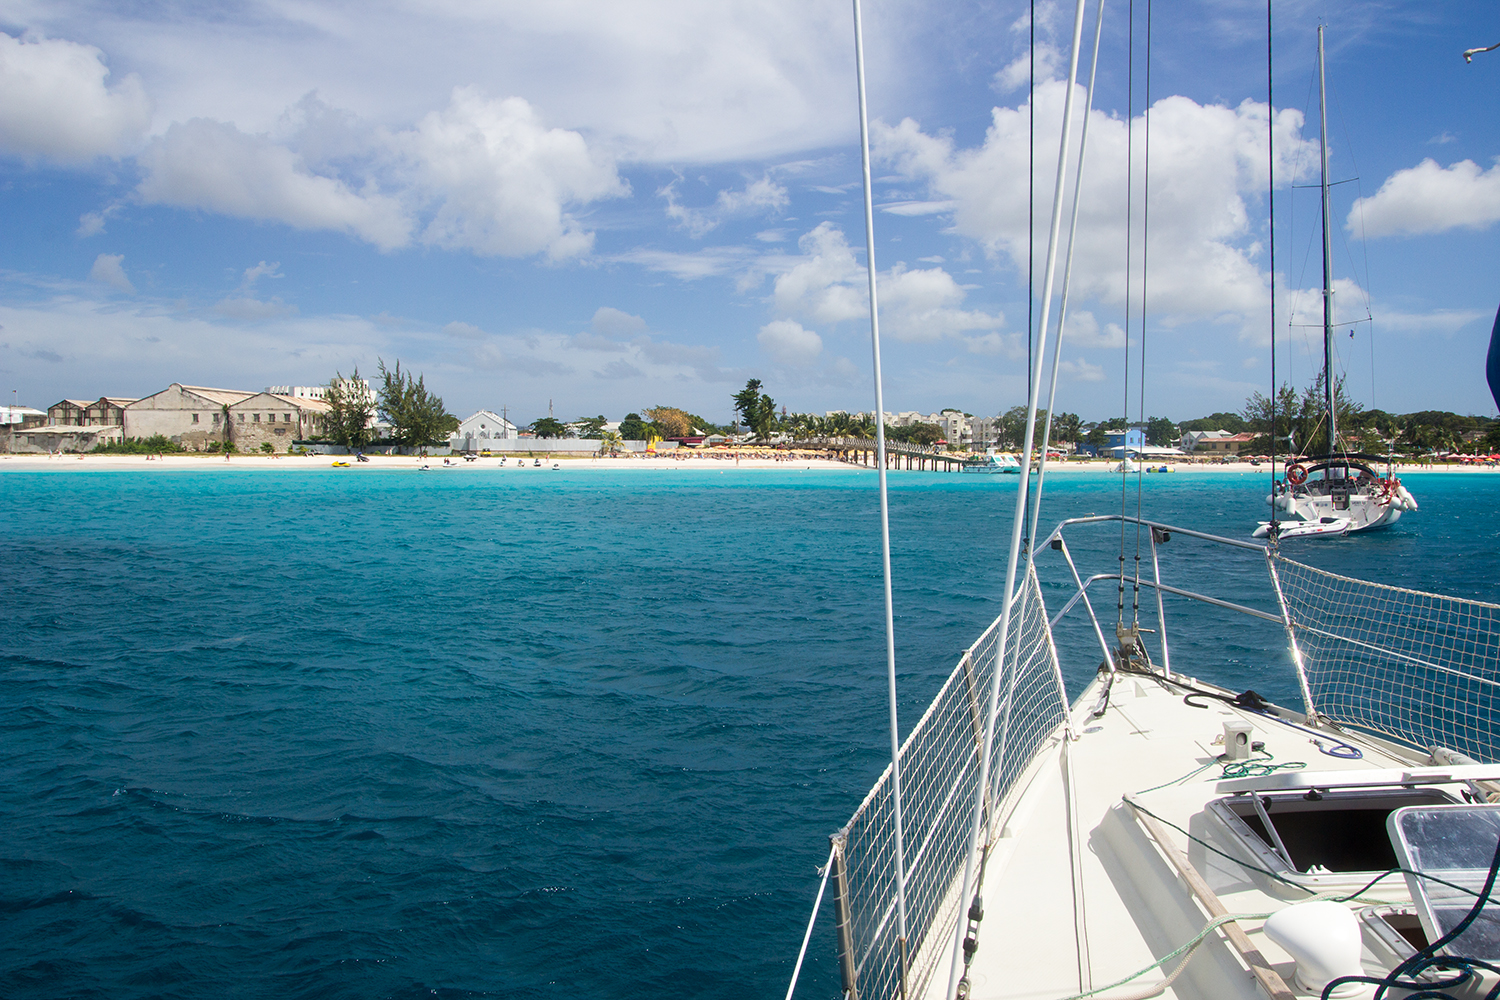 Anchored in the Carlisle Bay, Barbados